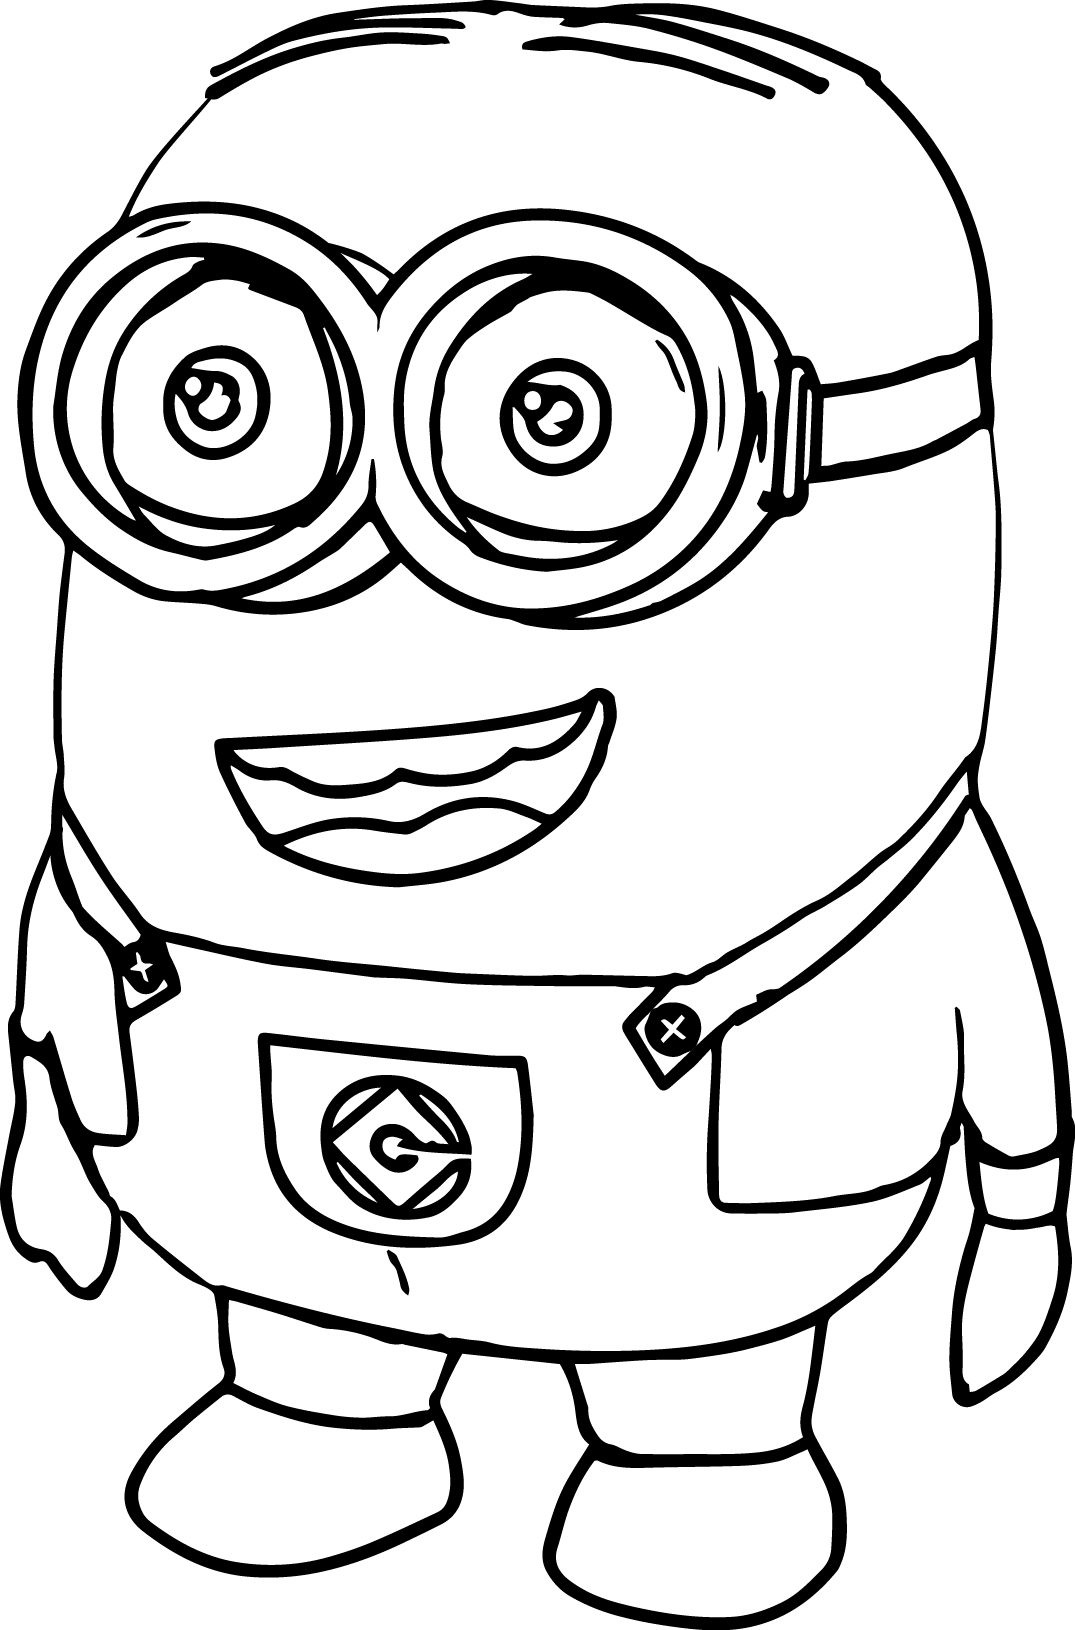 Minions Large Plush Style Coloring Page